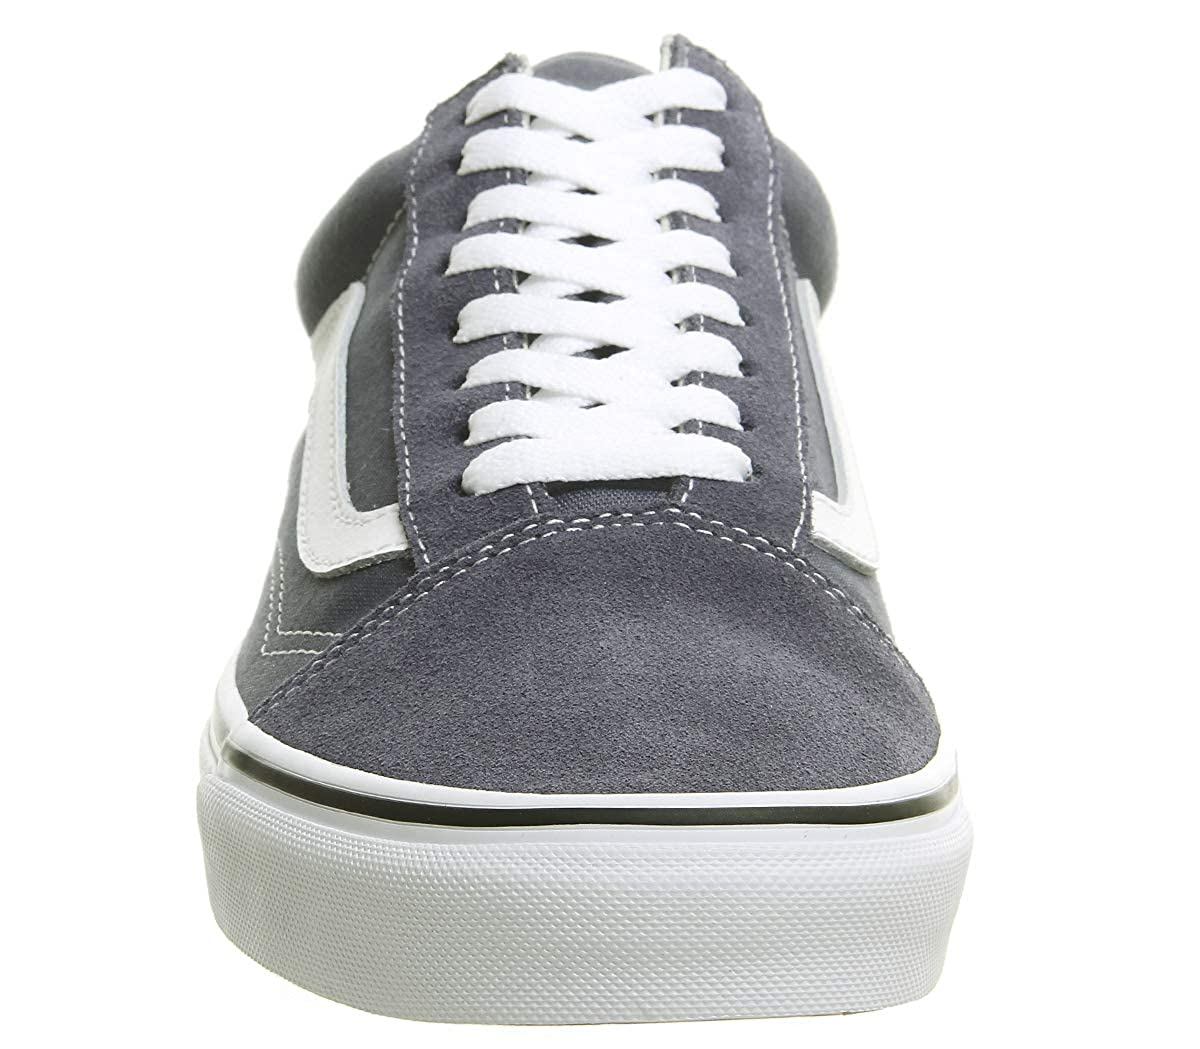 e78da207bdd Vans Old Skool Grisaille White - 4.5 UK  Amazon.co.uk  Shoes   Bags